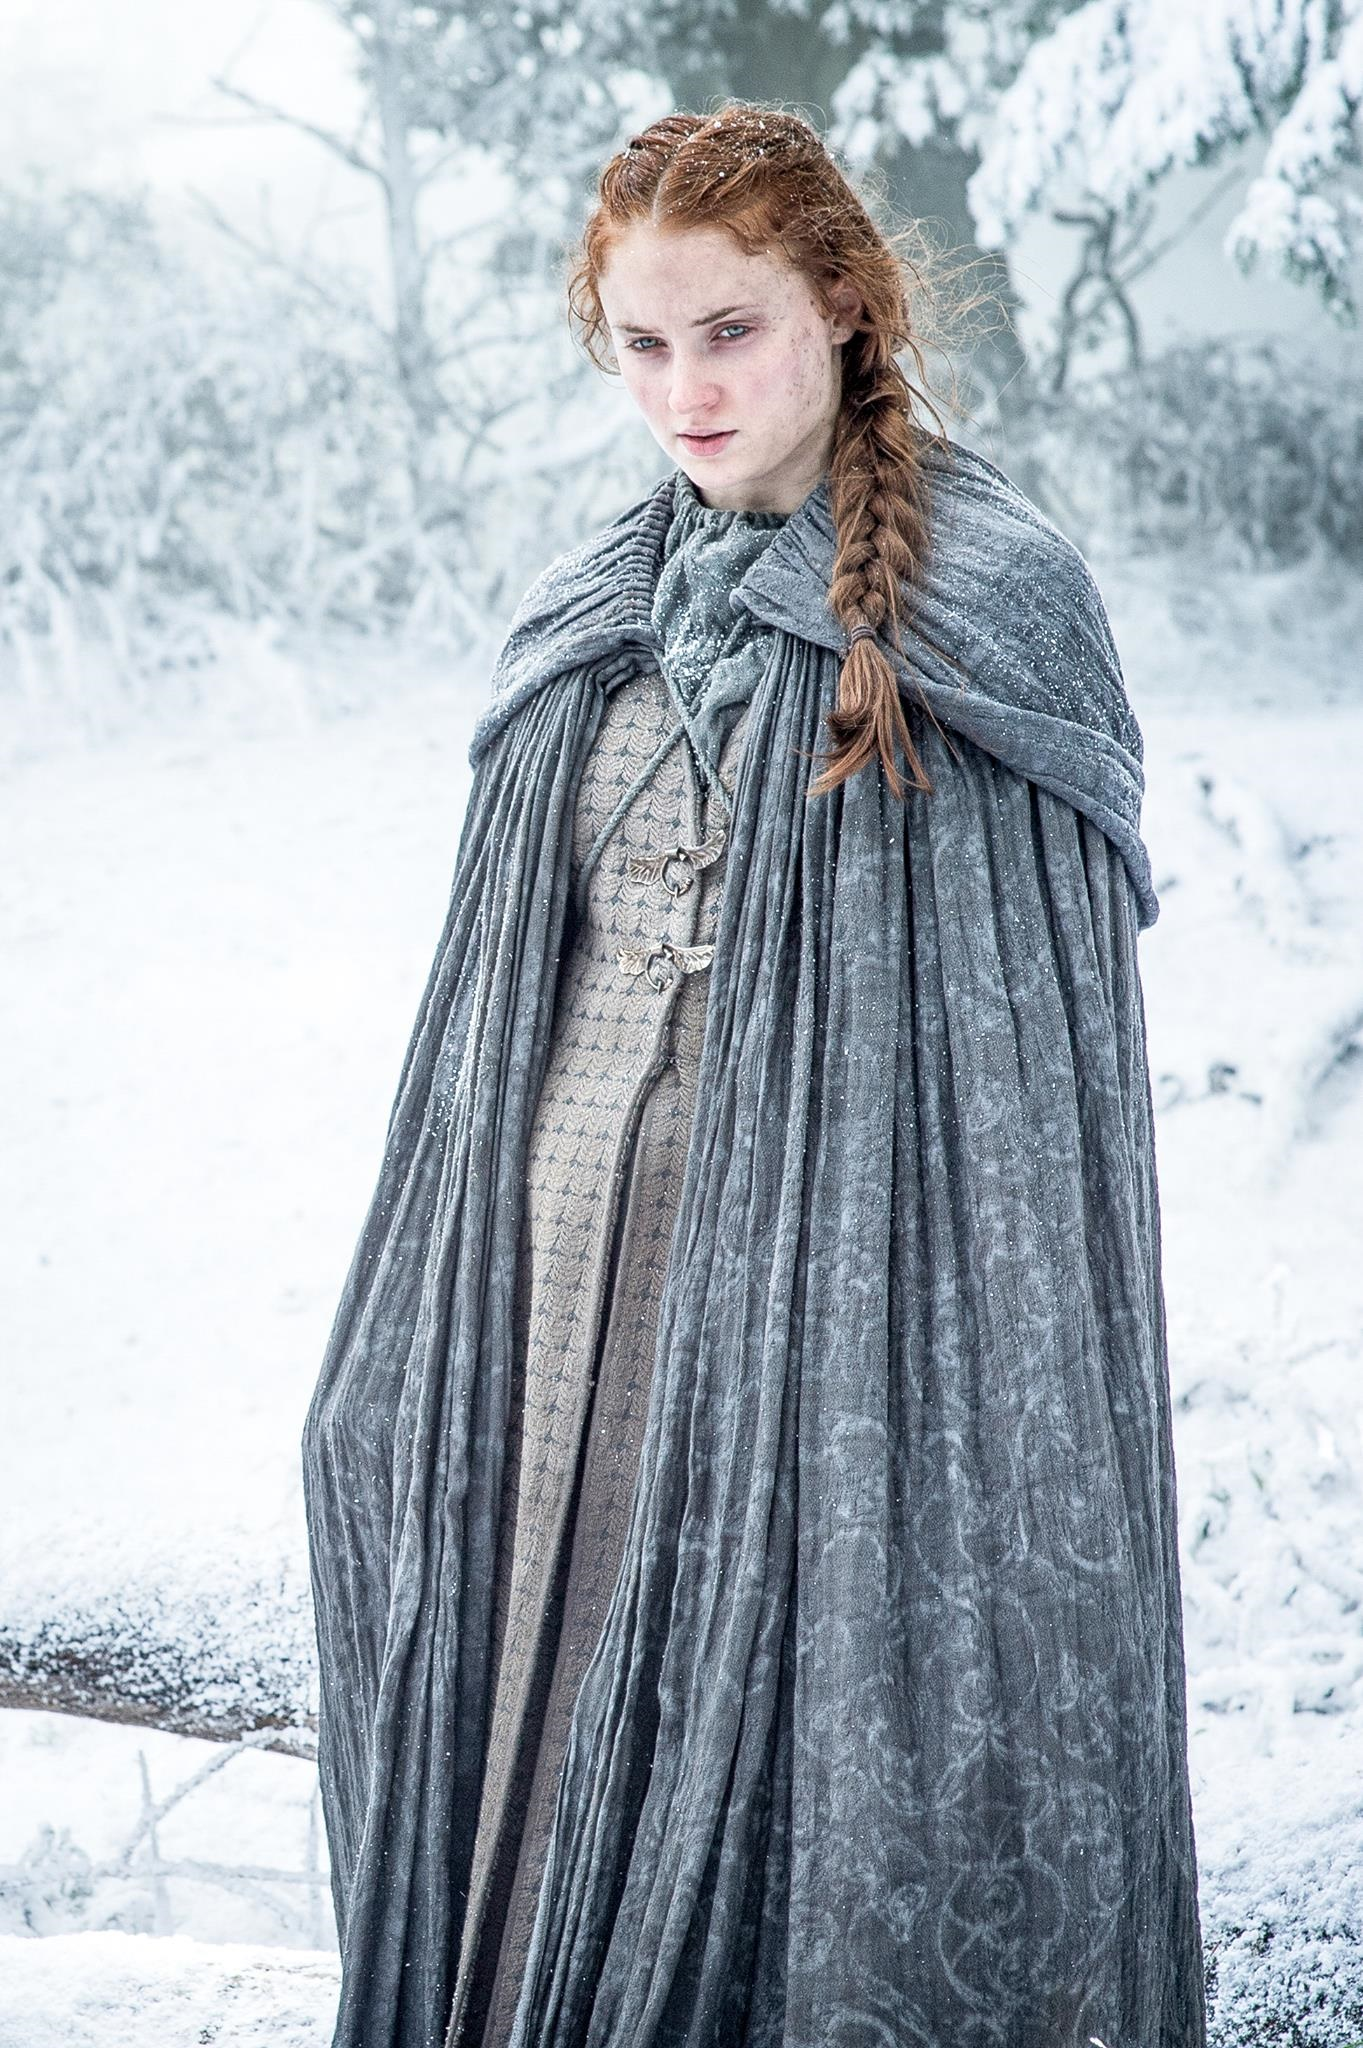 sansa stark, game of thrones, season 6, sophie turner, snow, winterfell